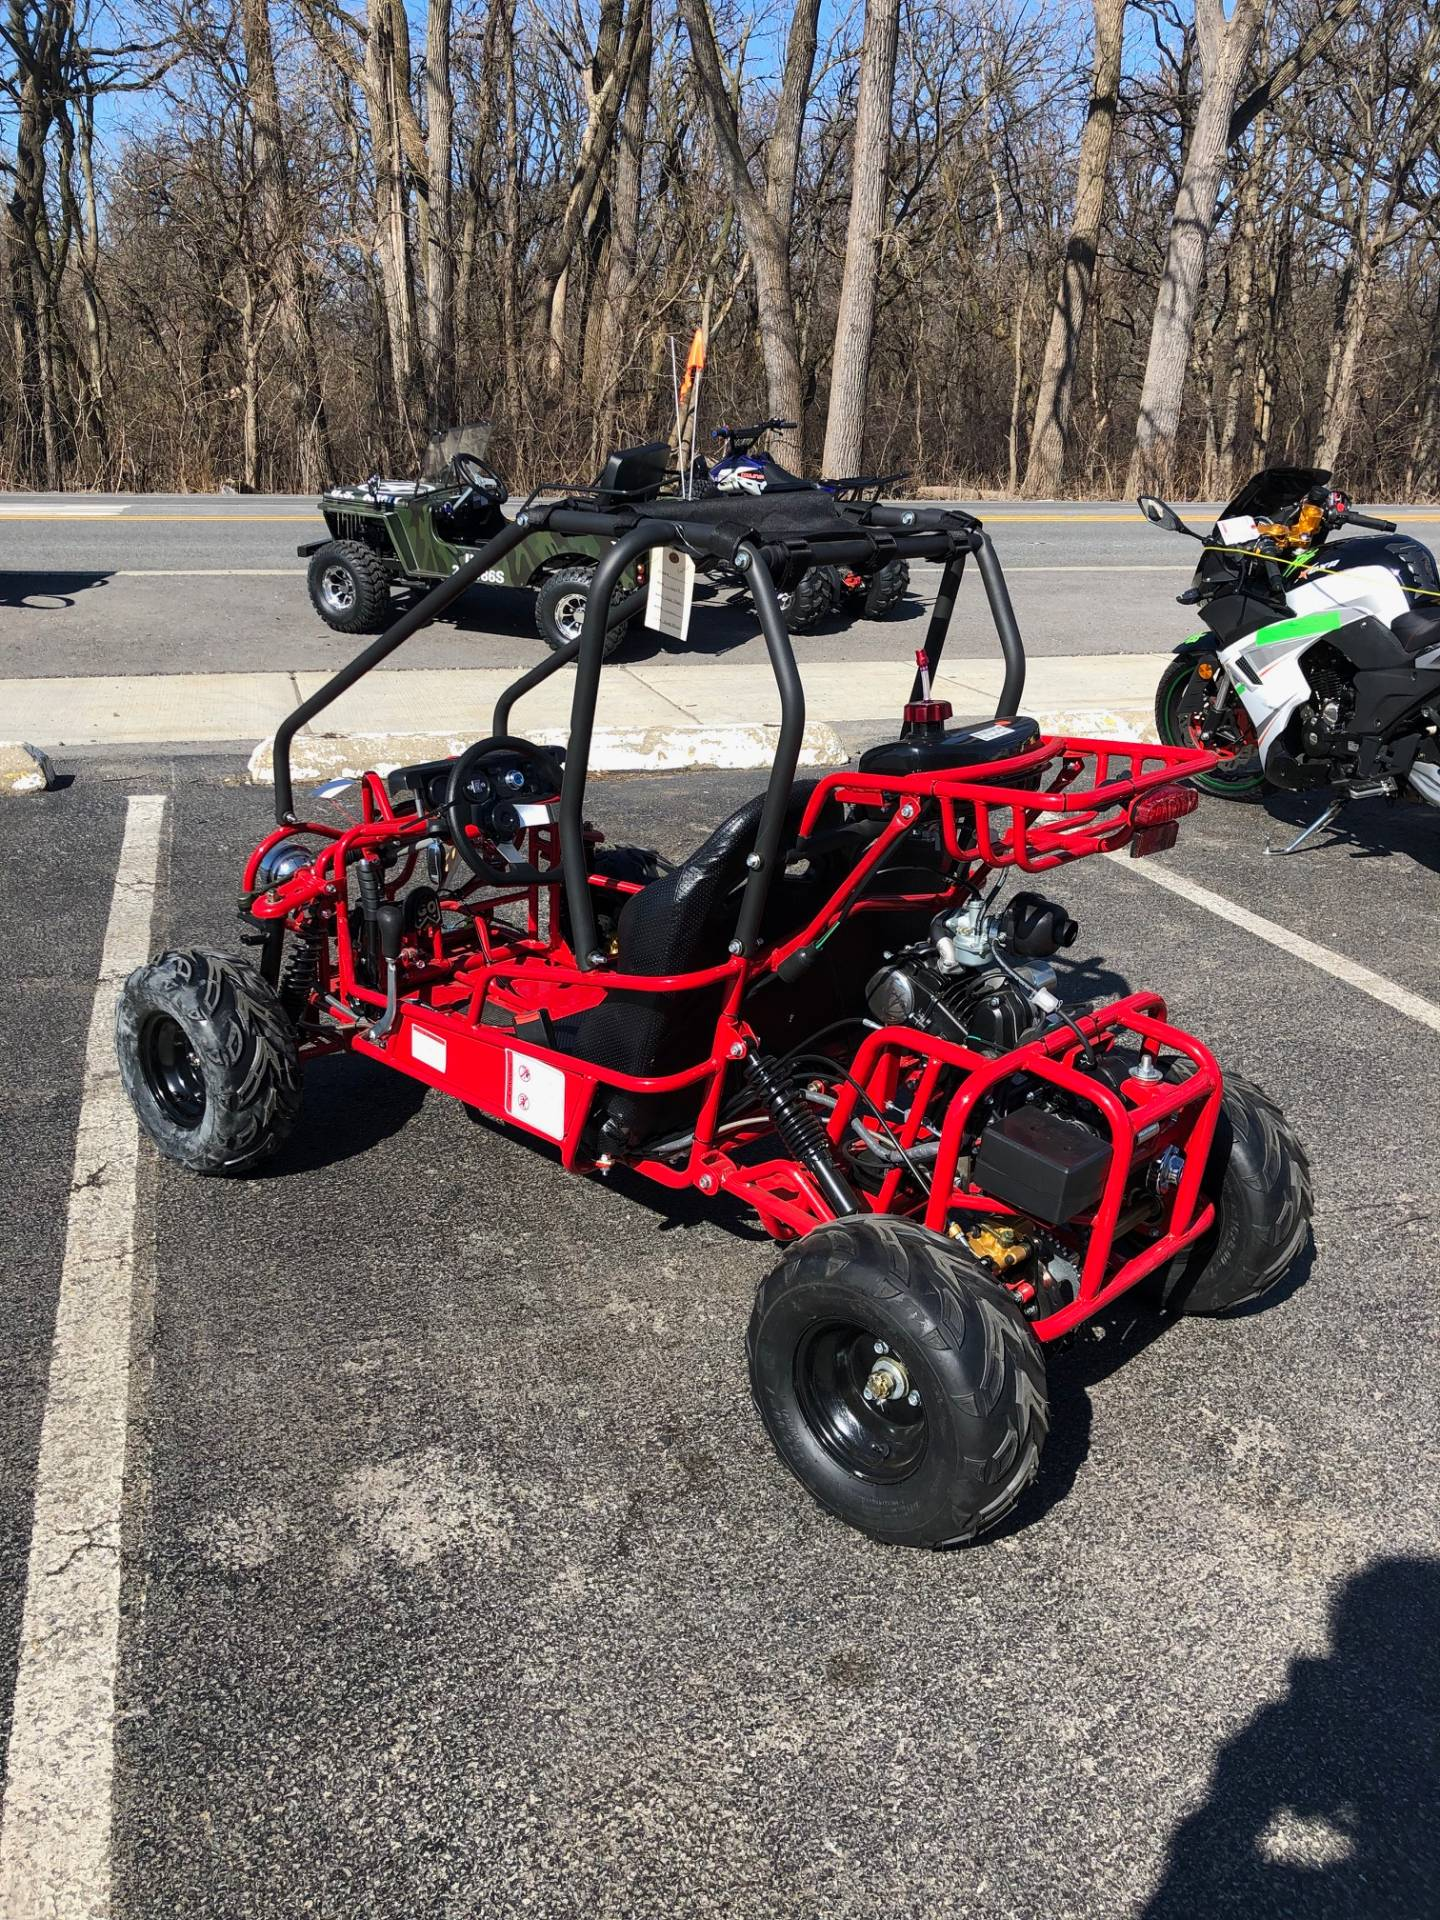 2019 Taotao USA 110cc in Forest View, Illinois - Photo 1